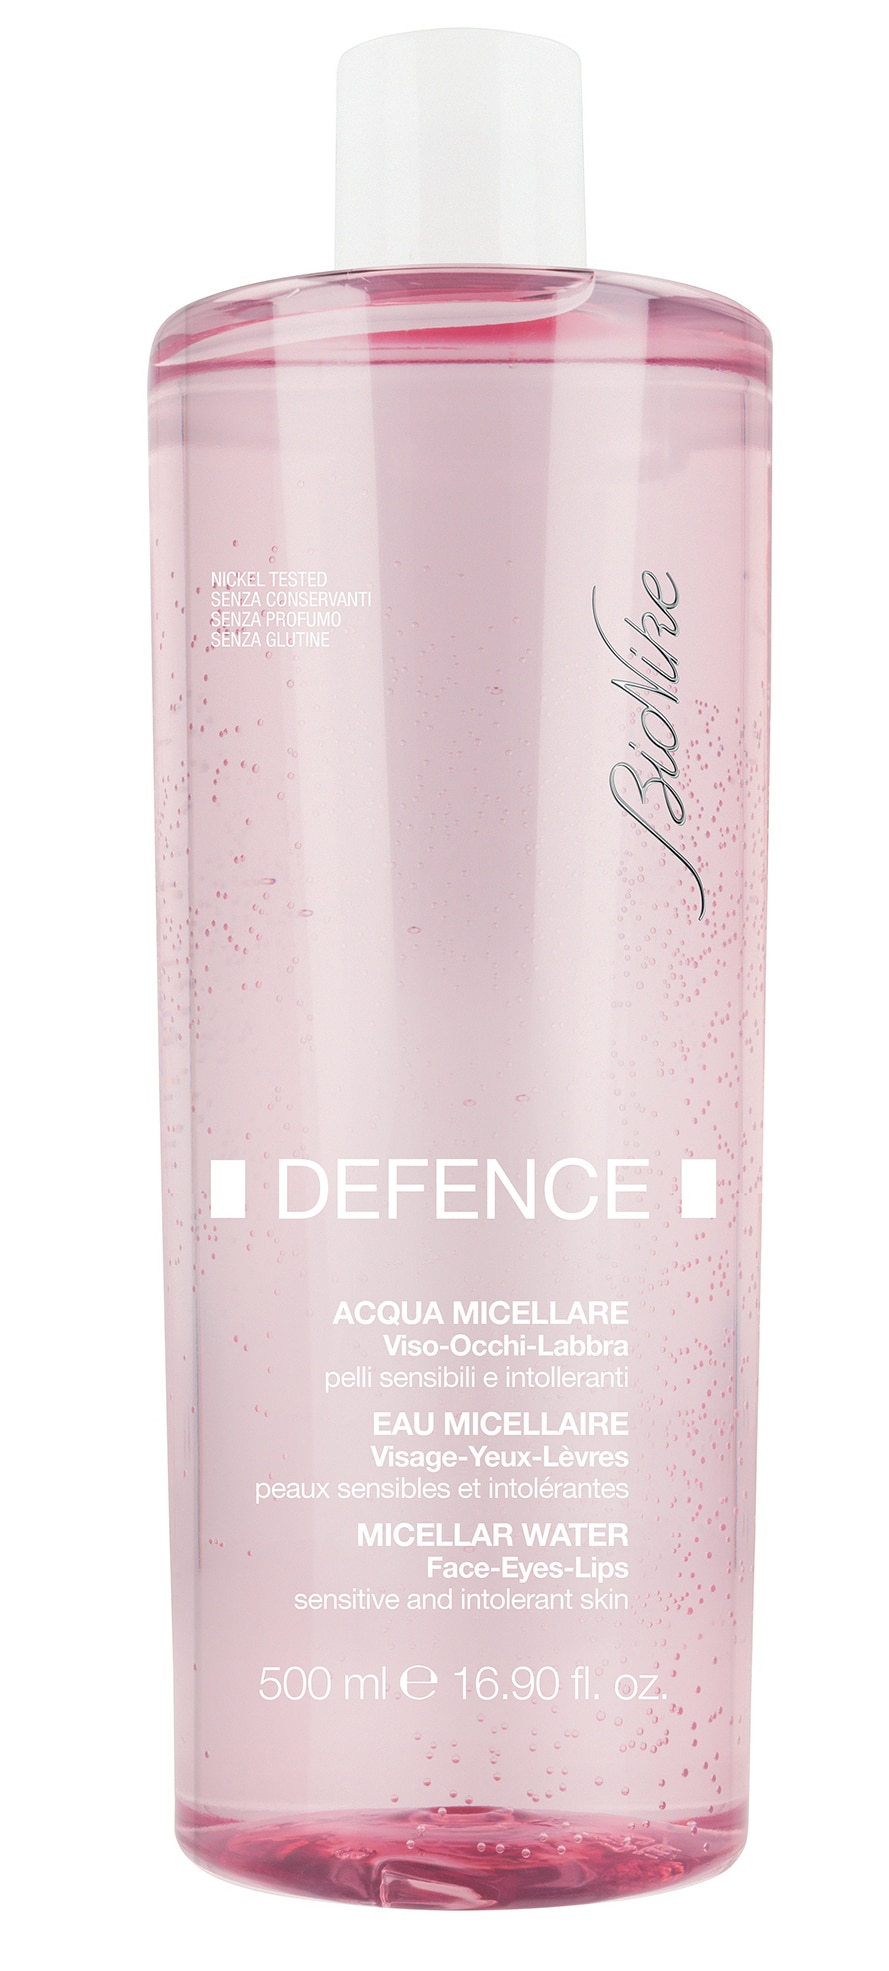 Acqua micellare Defence by BioNike